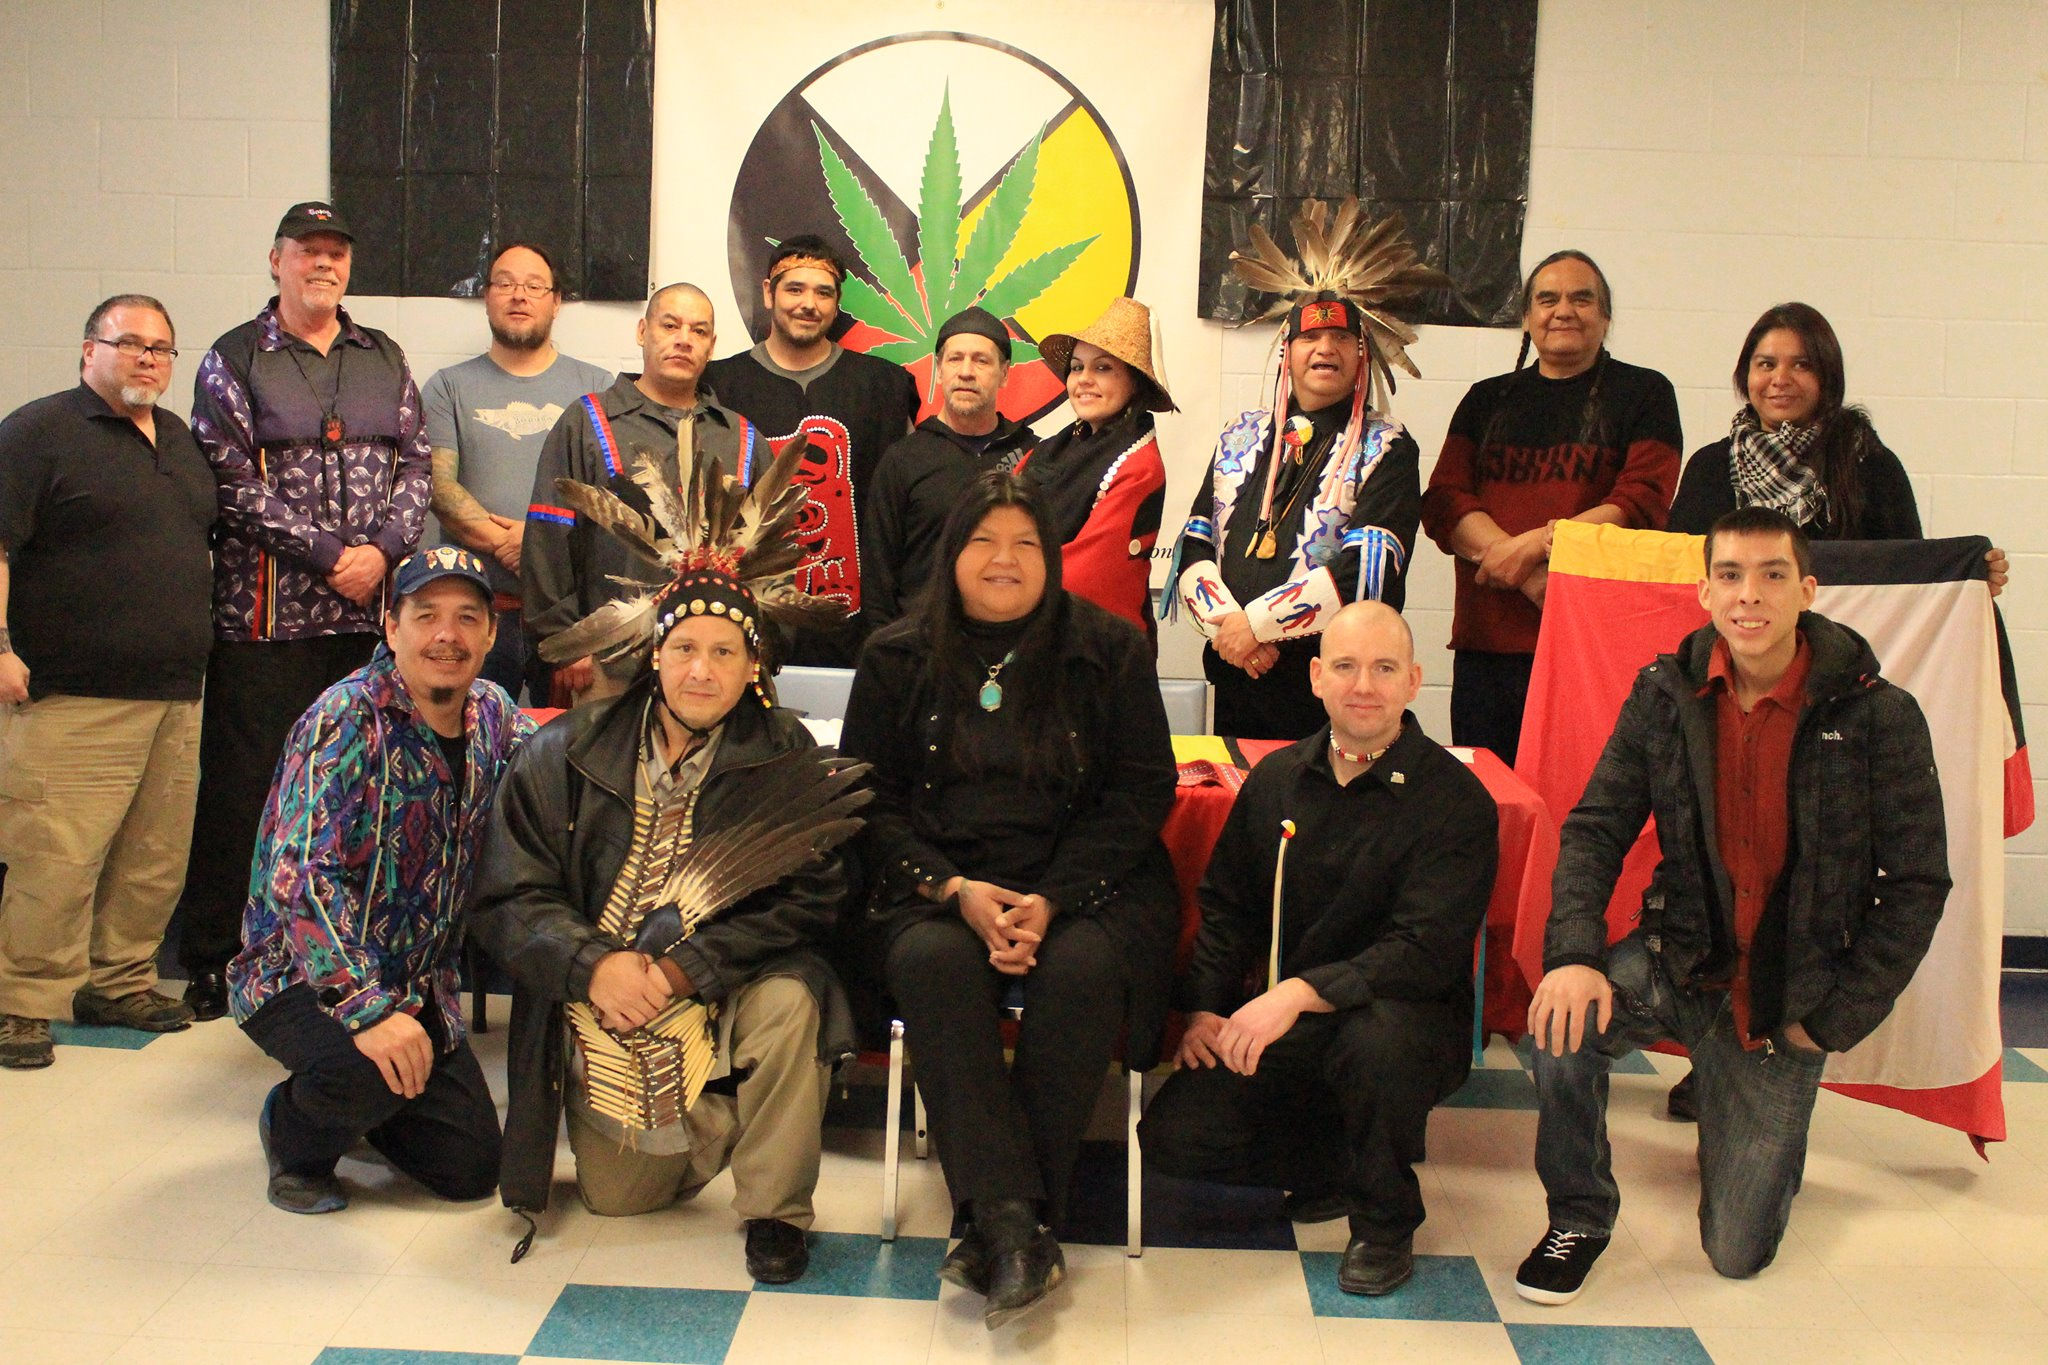 A number of Kanien'kehá:ka (Mohawk) representatives elected to the inaugural board of the National Indigenous Medical Cannabis Association, 2017. Photo credits to and with permission from: Clifton Nicholas